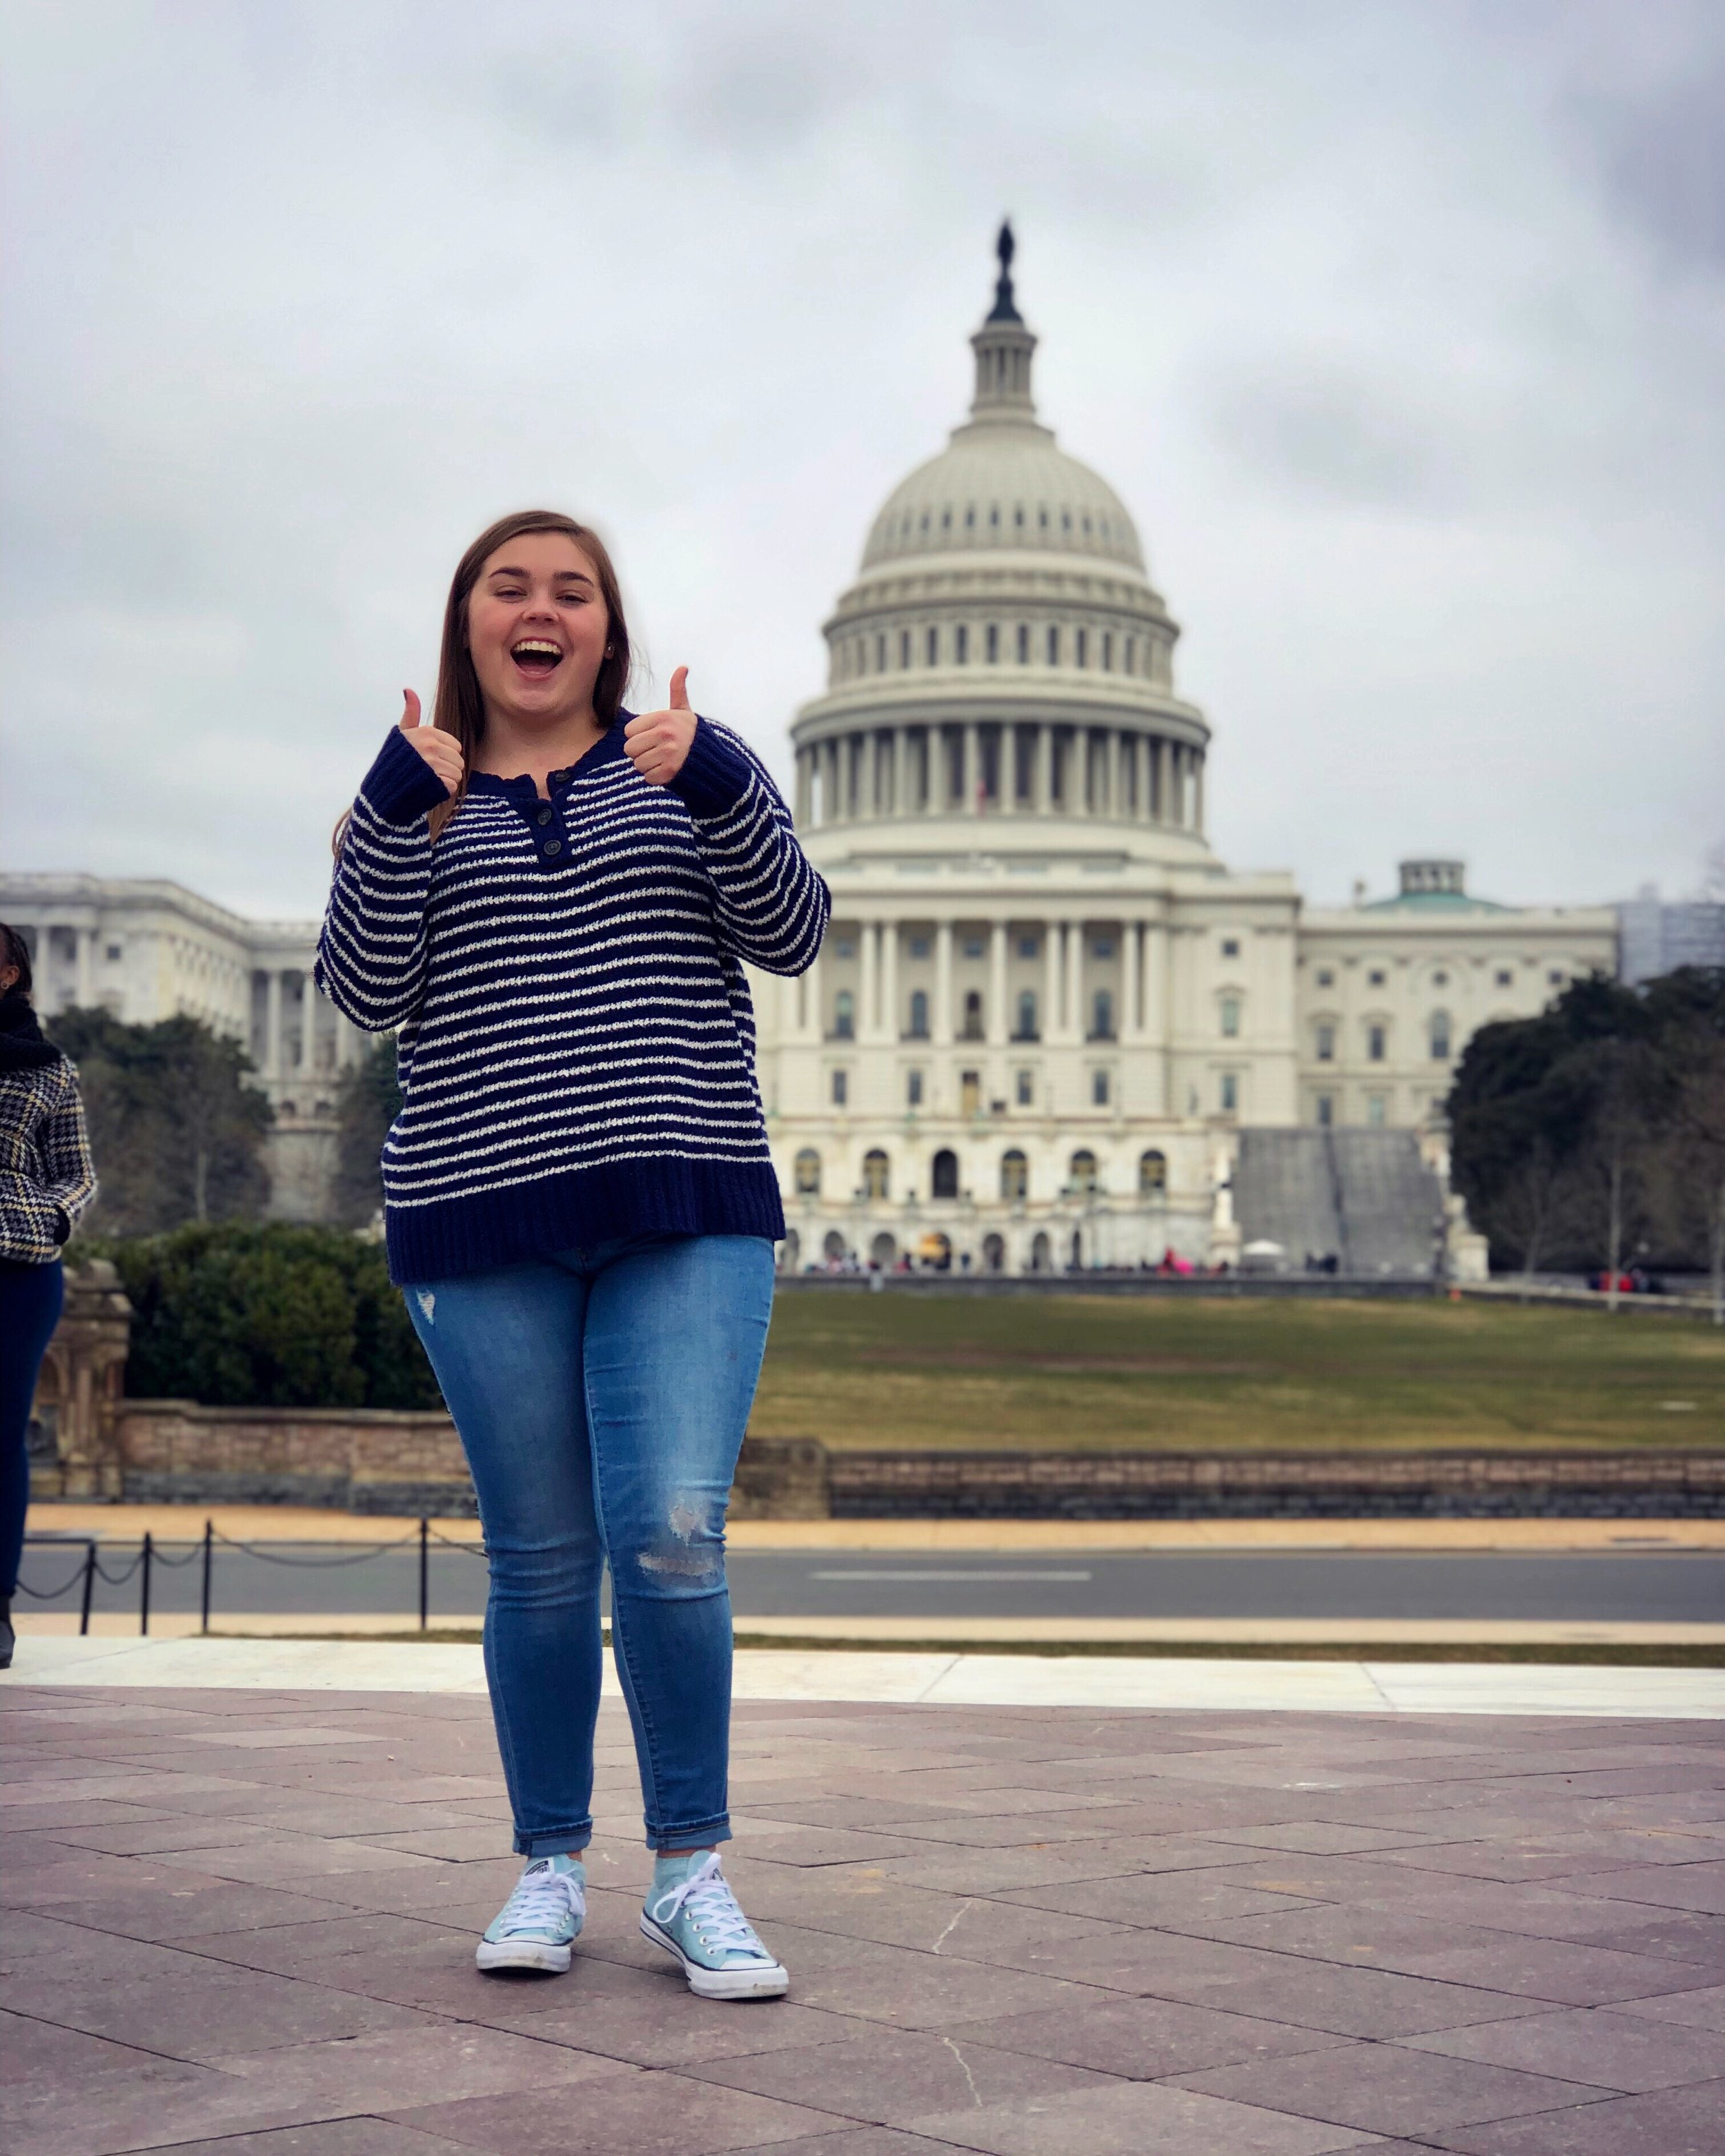 Madeline posing in front of the US Capitol Building during the 2019 Concert Choir Tour.